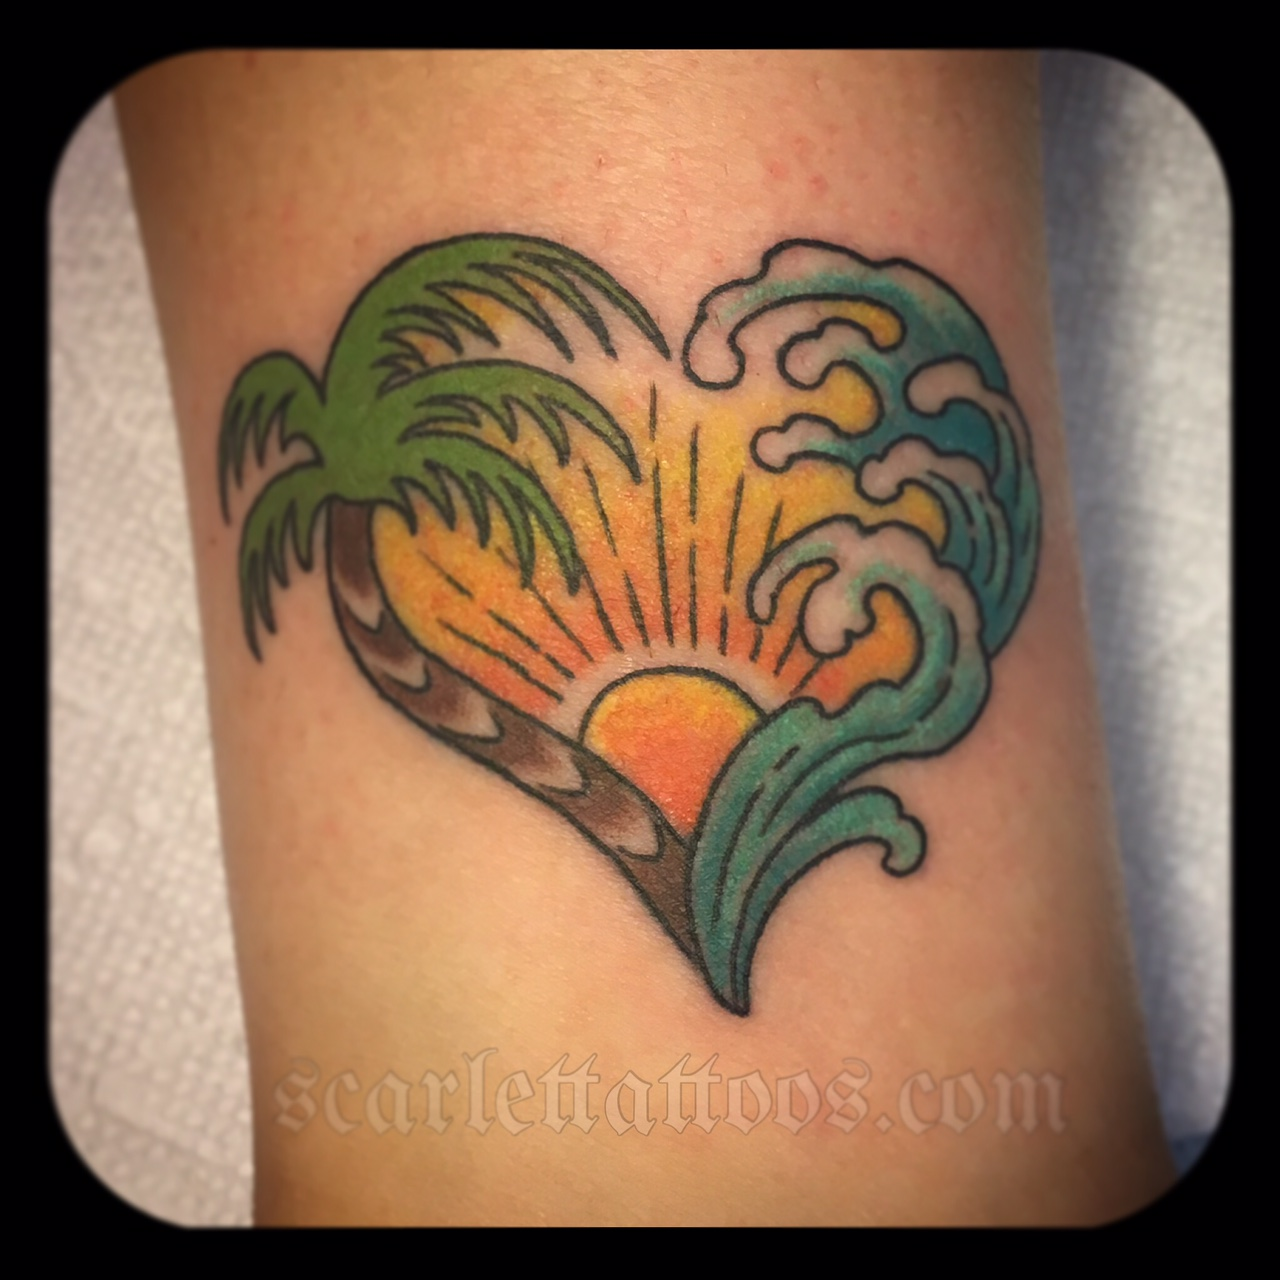 California Love tattoo with palm tree and wave